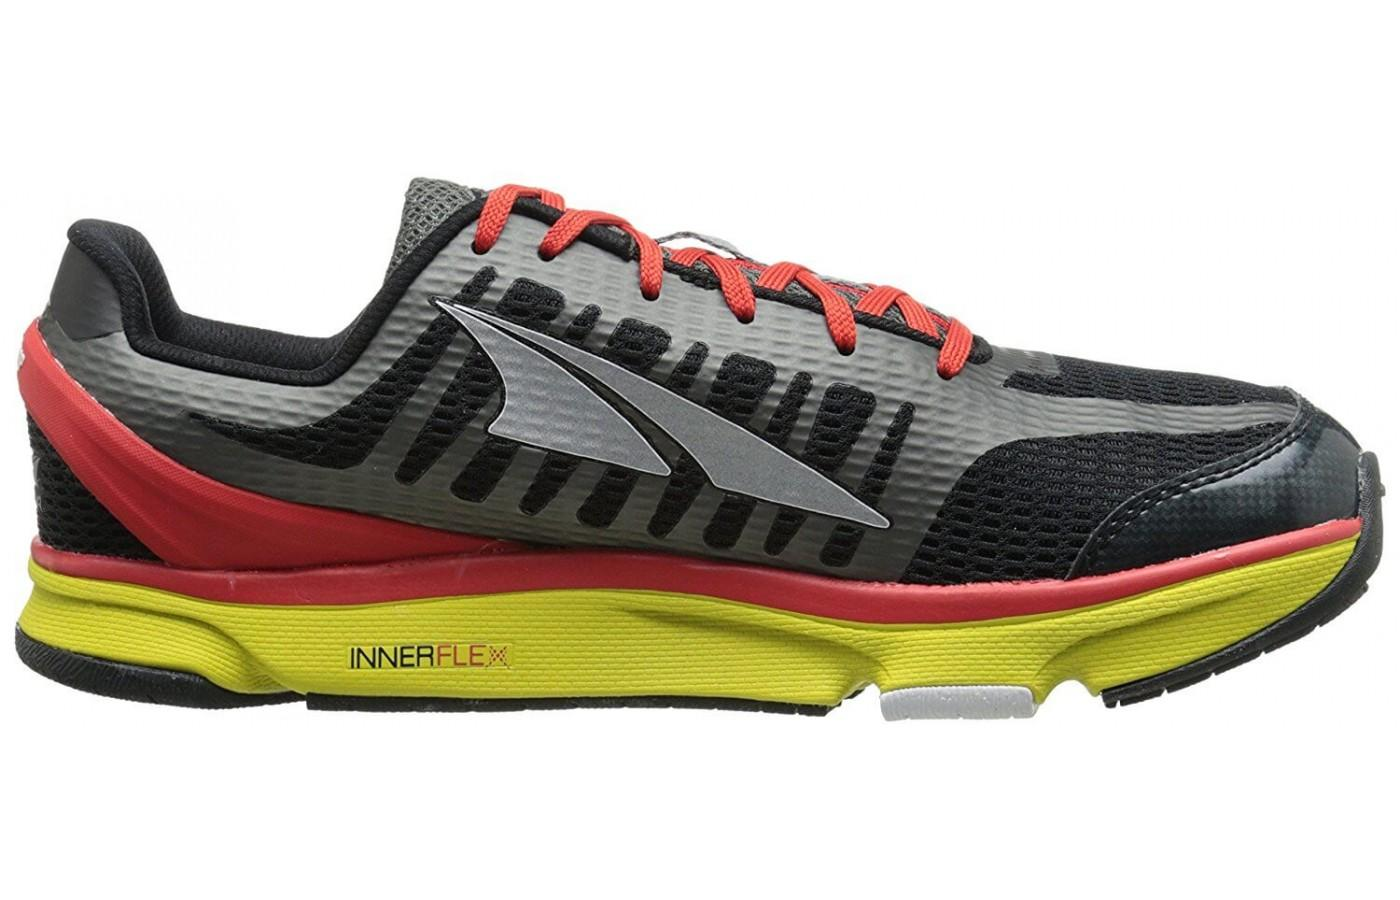 the Altra Provision 2 from the right